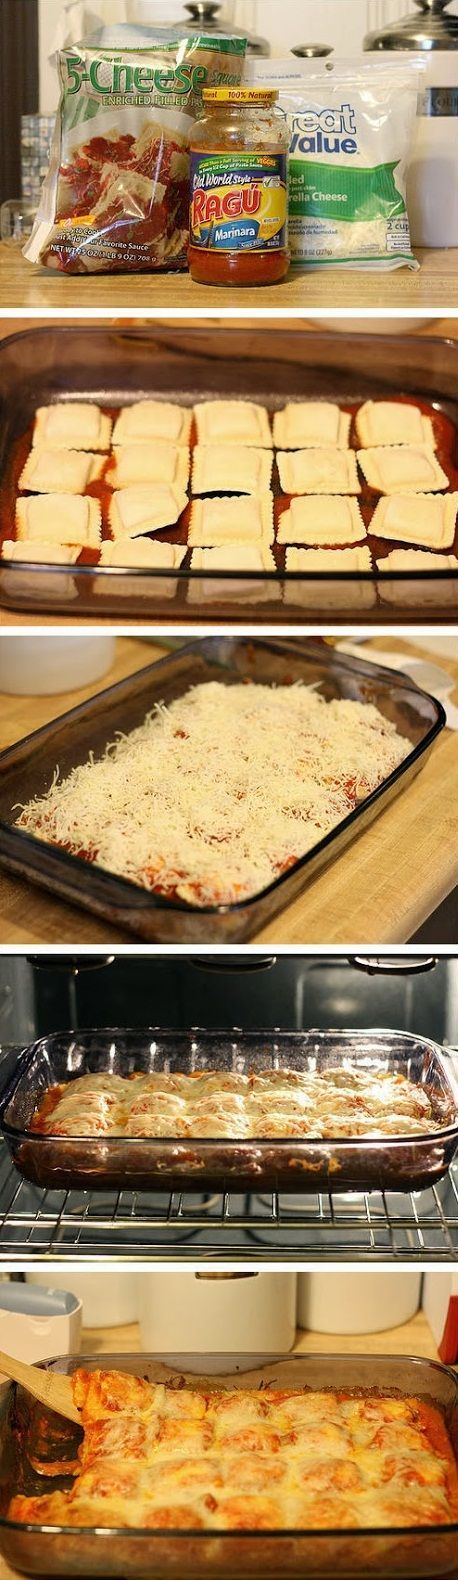 Baked Ravioli - 4 ingredients. Just keep it on hand till you are craving it, Nom nom nom!